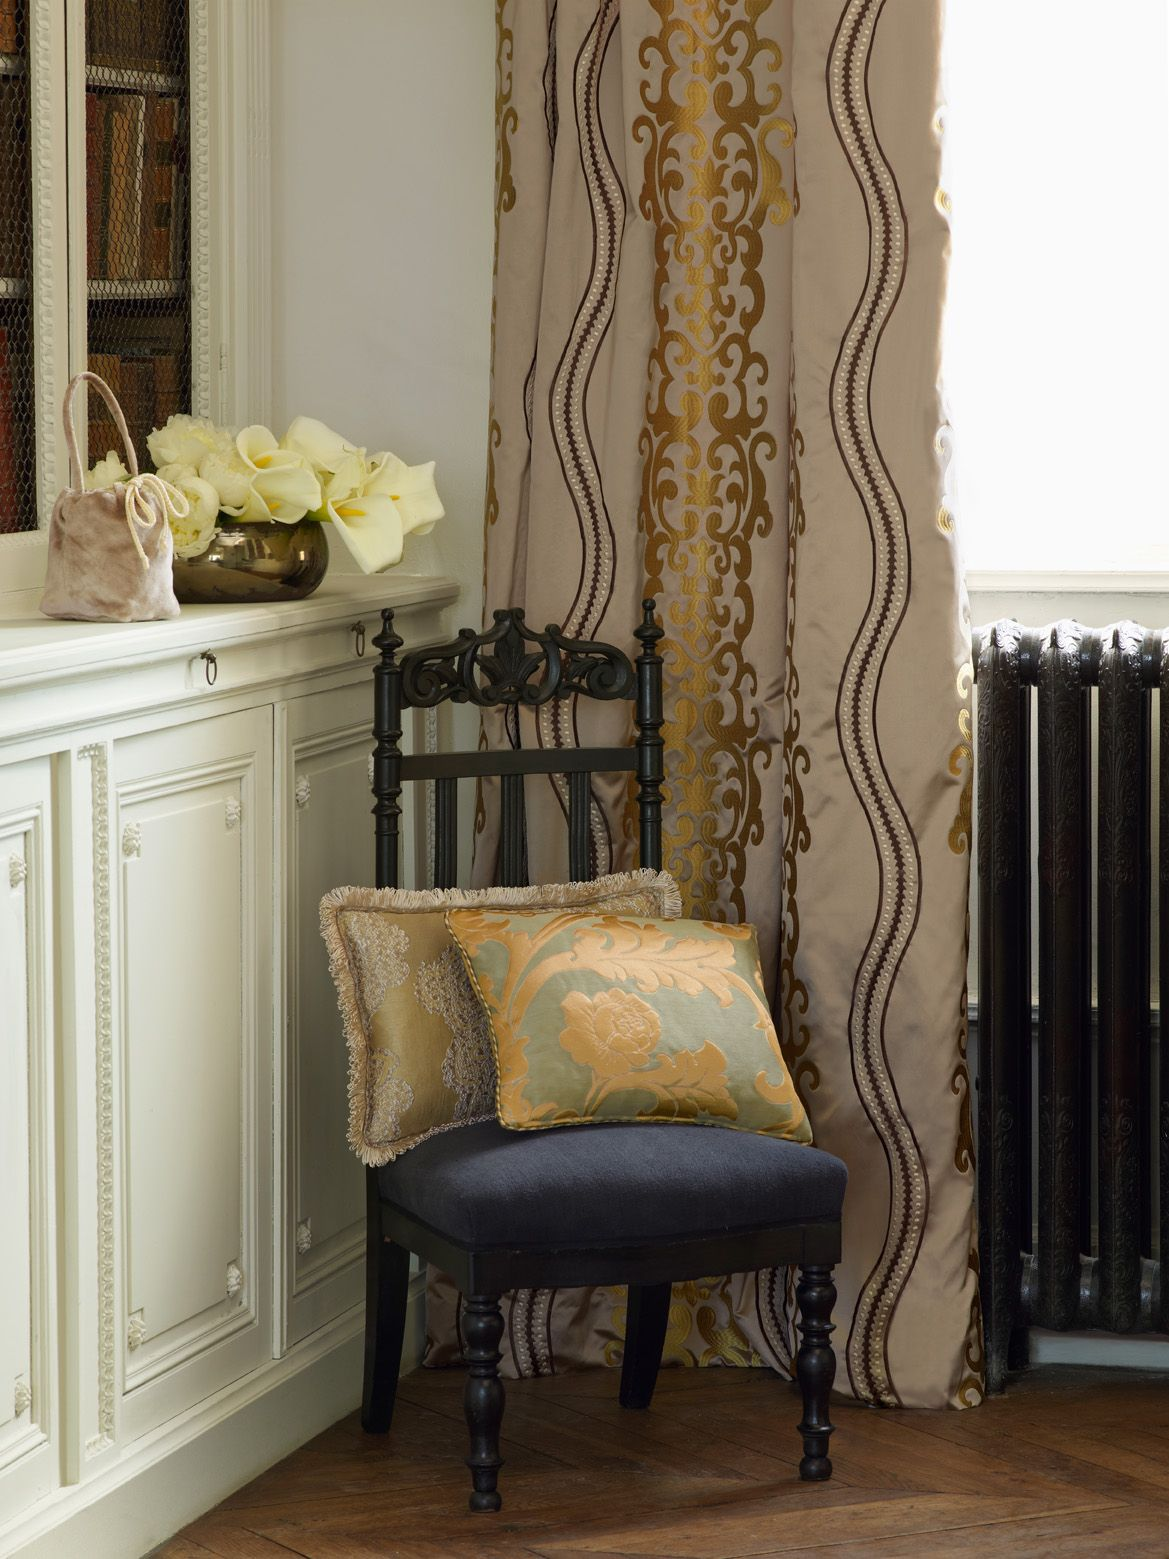 william sonoma chair covers cover hire grantham ardecora by zimmer and rohde dessin libretto placo